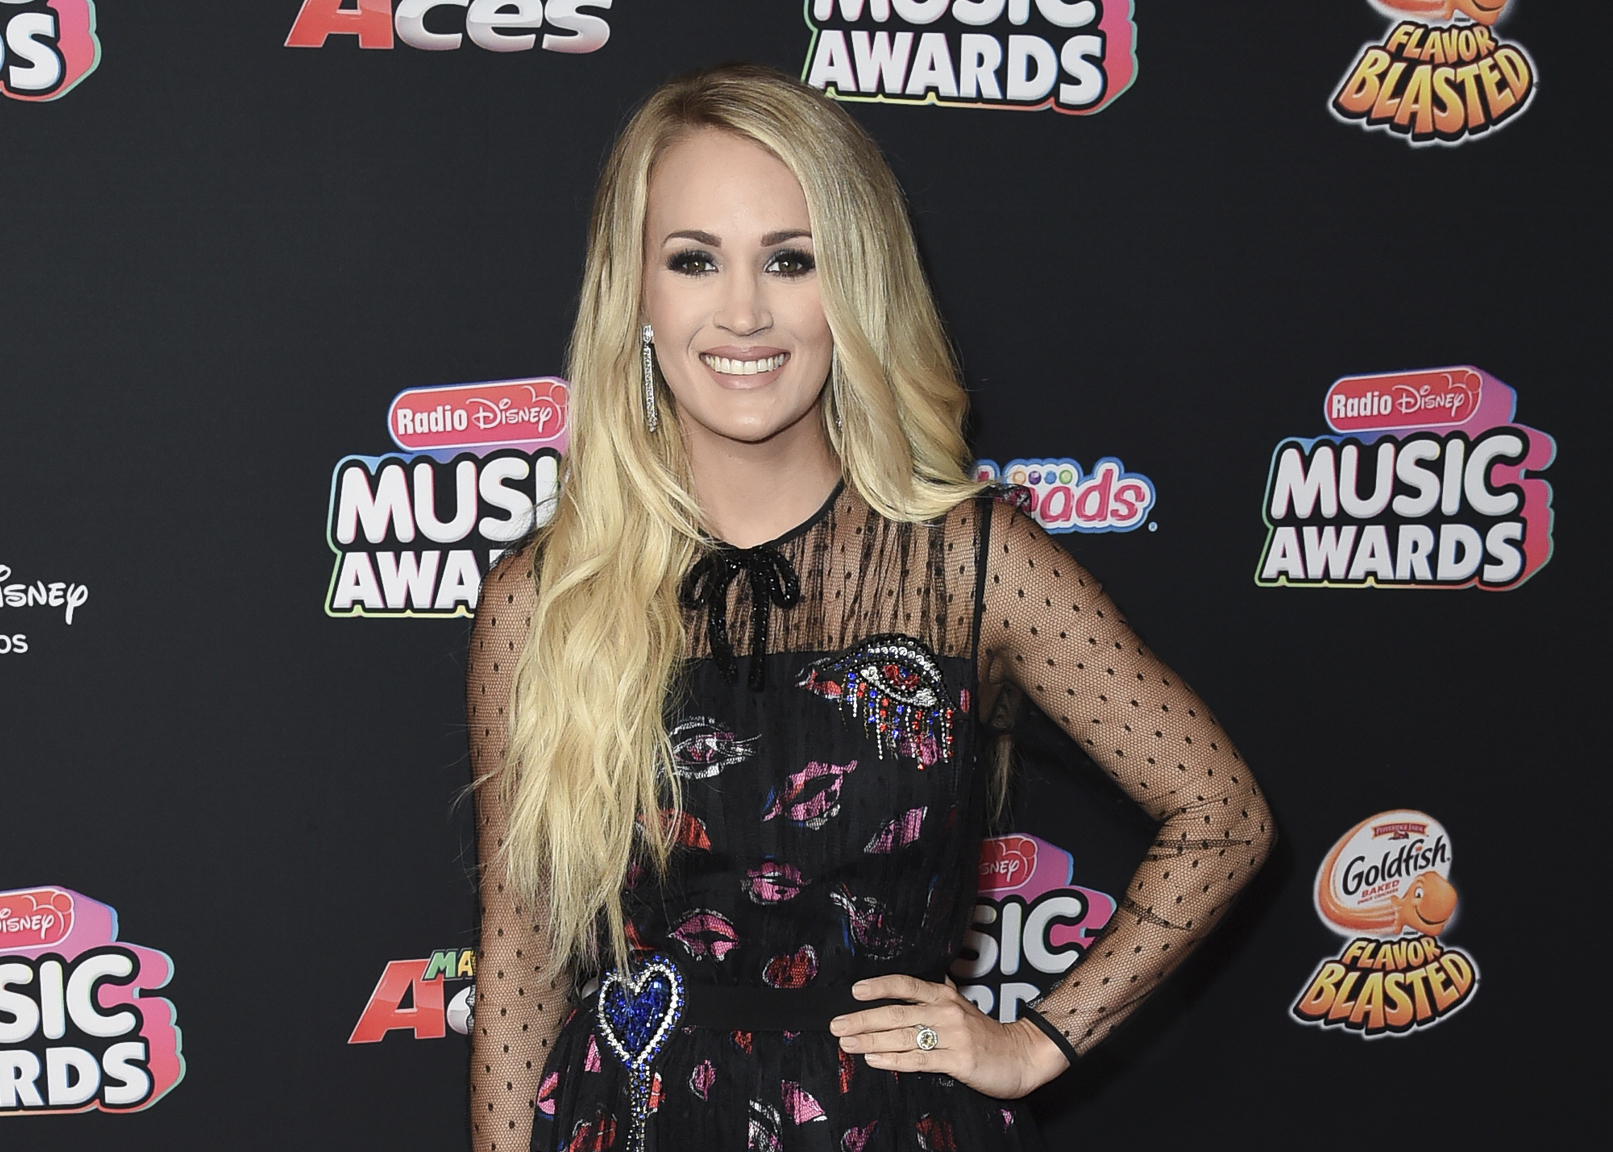 People-Carrie_Underwood_13449-159532.jpg90179398